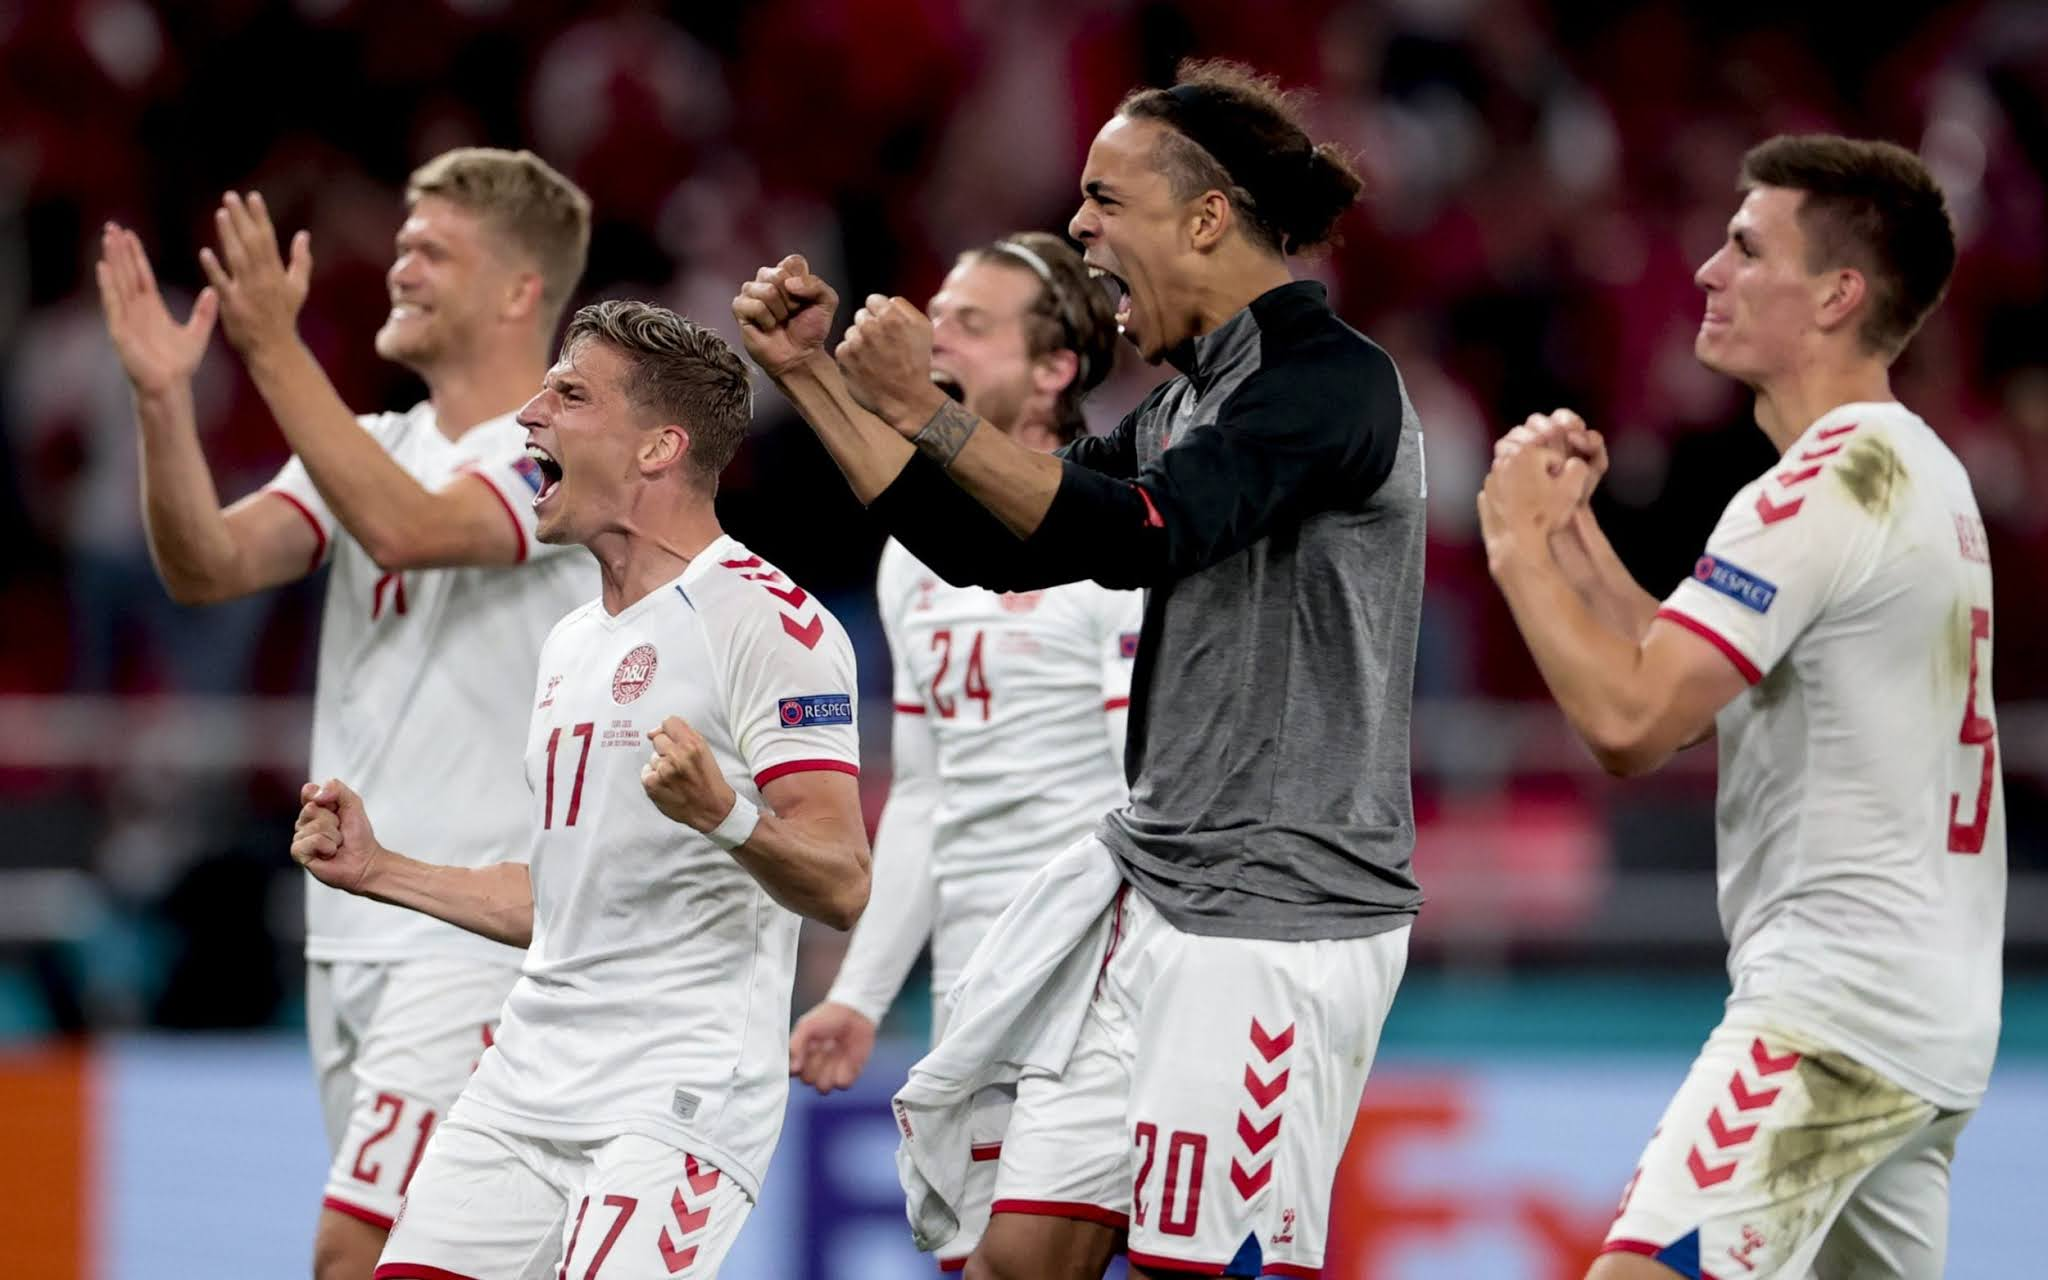 Denmark have turned their form around after a slow start to the tournament